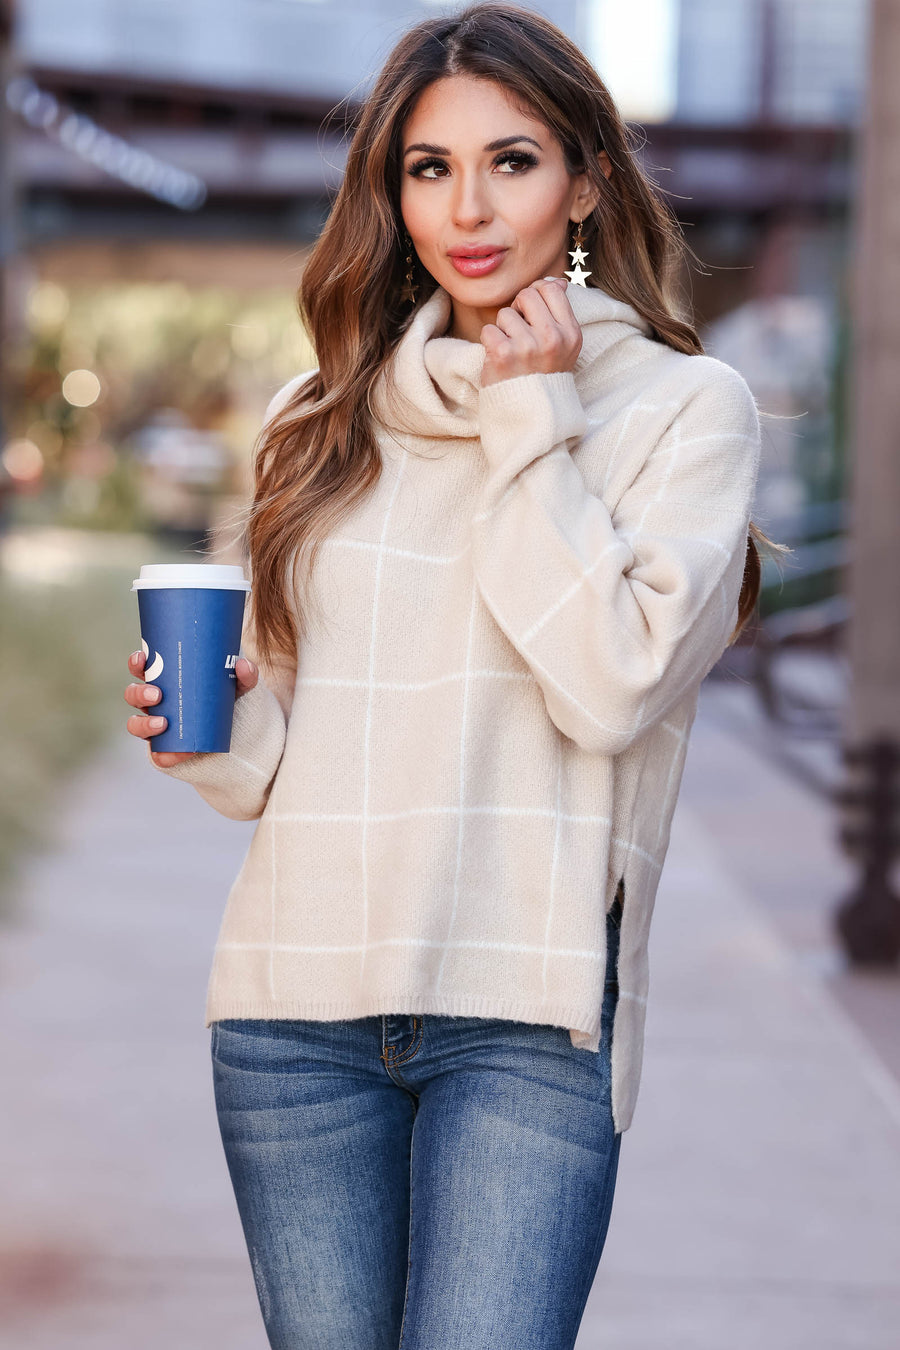 On Second Thought Turtleneck Sweater - Taupe womens trendy long sleeve grid sweater closet candy front